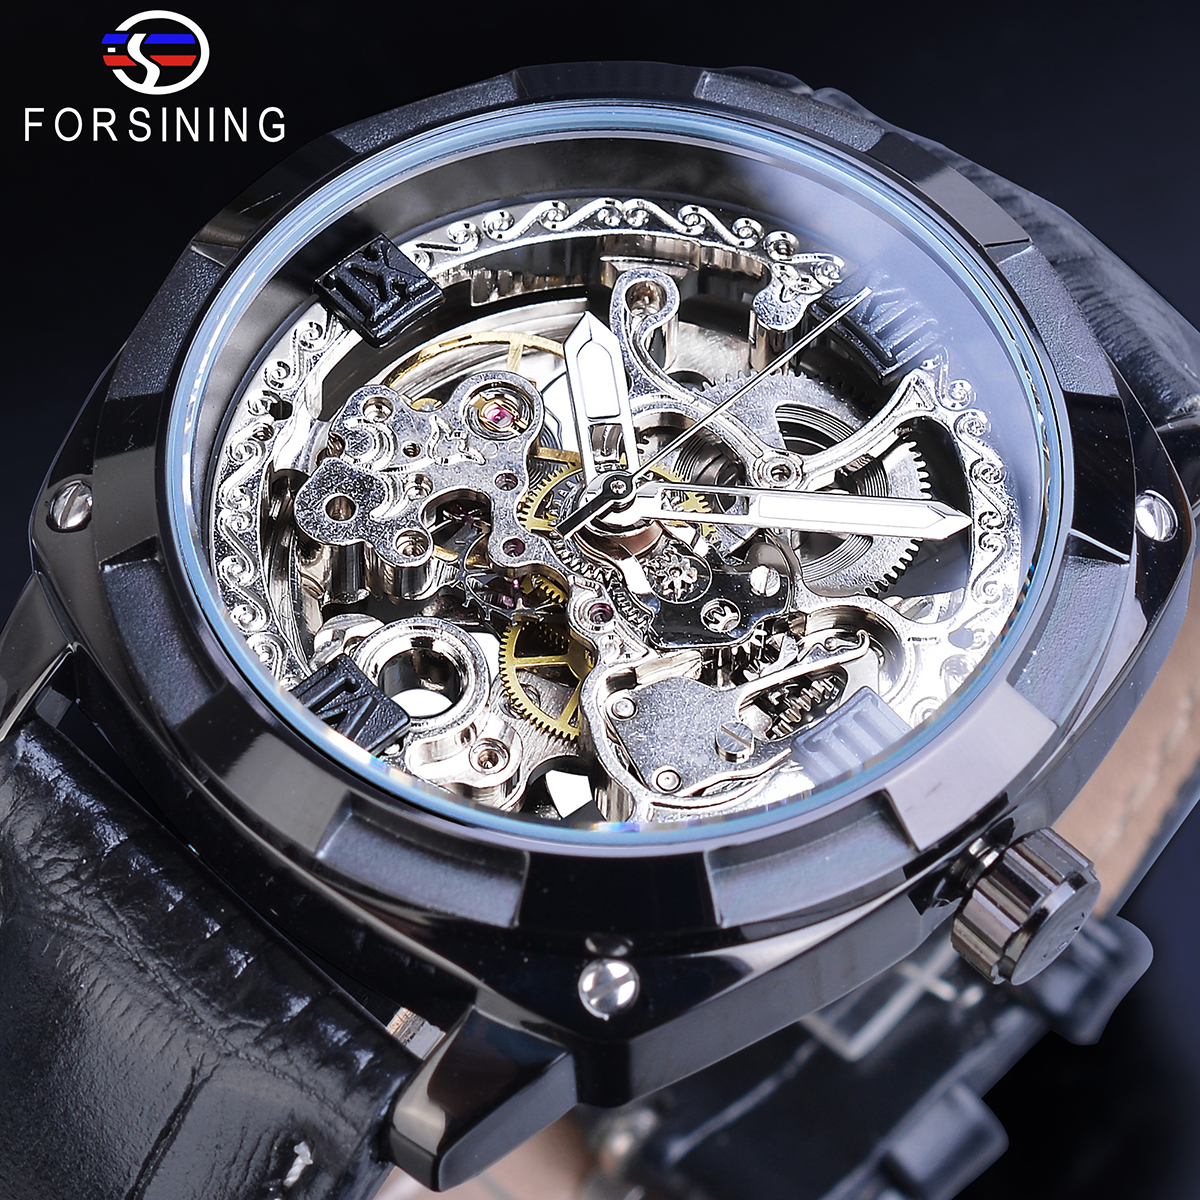 Forsining Classic Men Mechanical Watches Black Transparent Square Dial Automatic Male Wristwatch Leather Strap Relogio Masculino|Mechanical Watches|   - title=